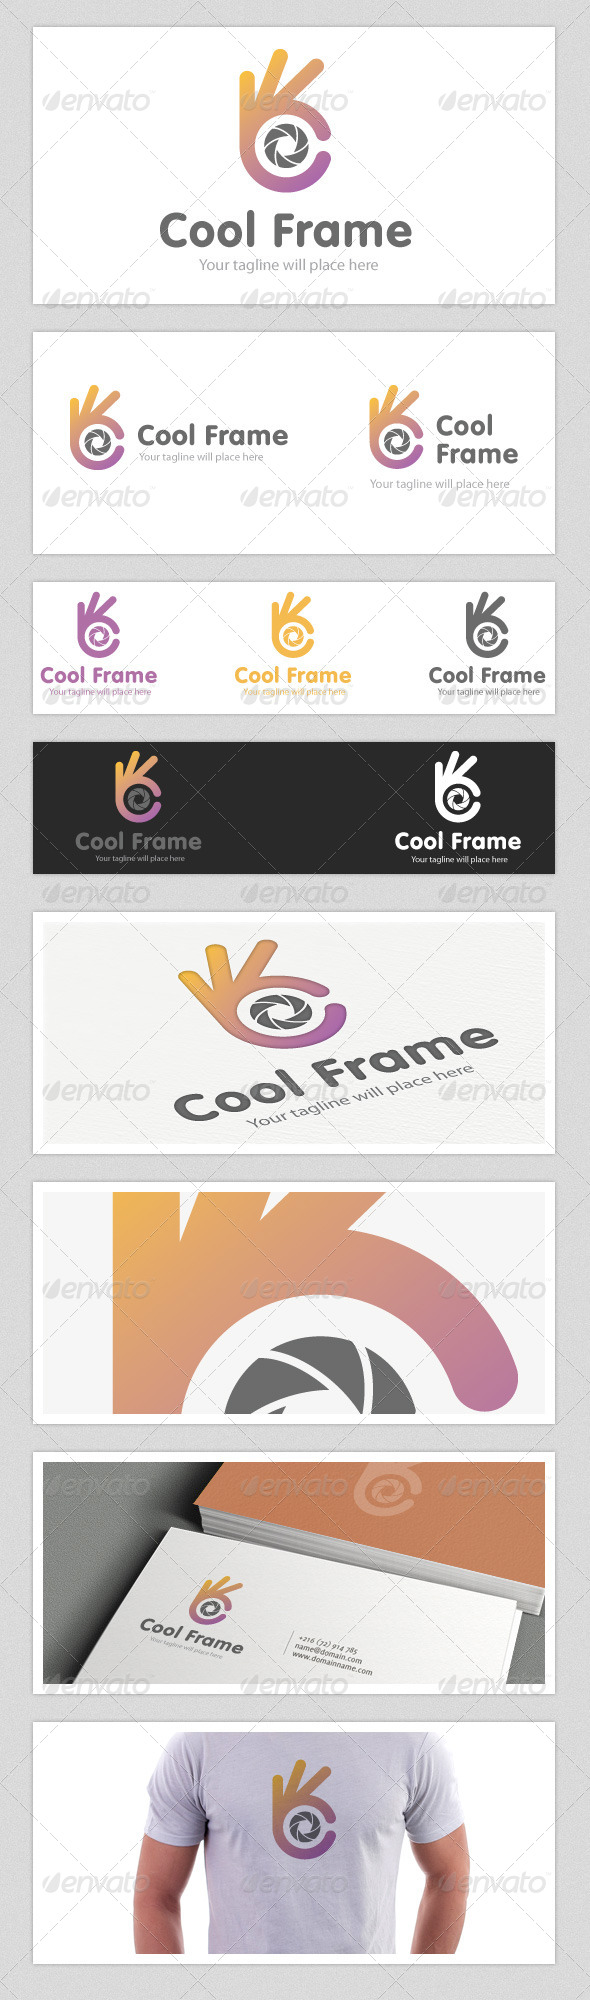 GraphicRiver Cool Frame Logo 4512600